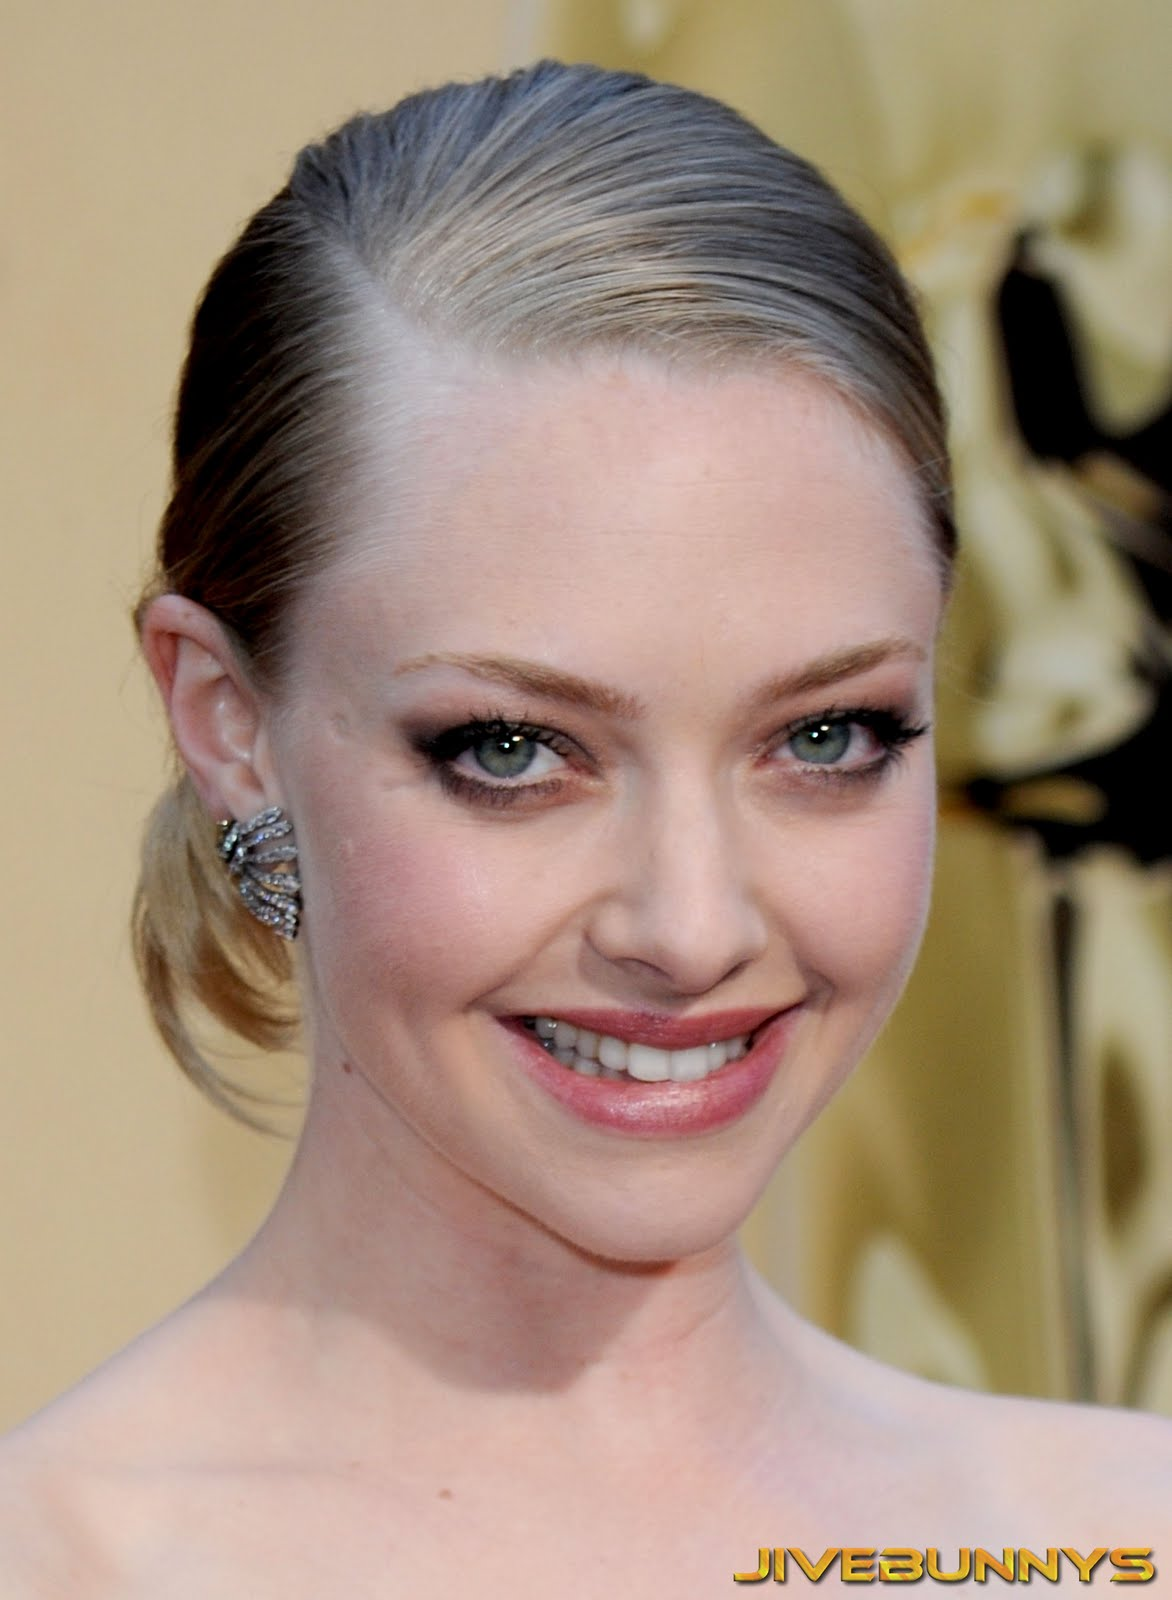 Amanda Seyfried Special Pictures 4 Film Actresses